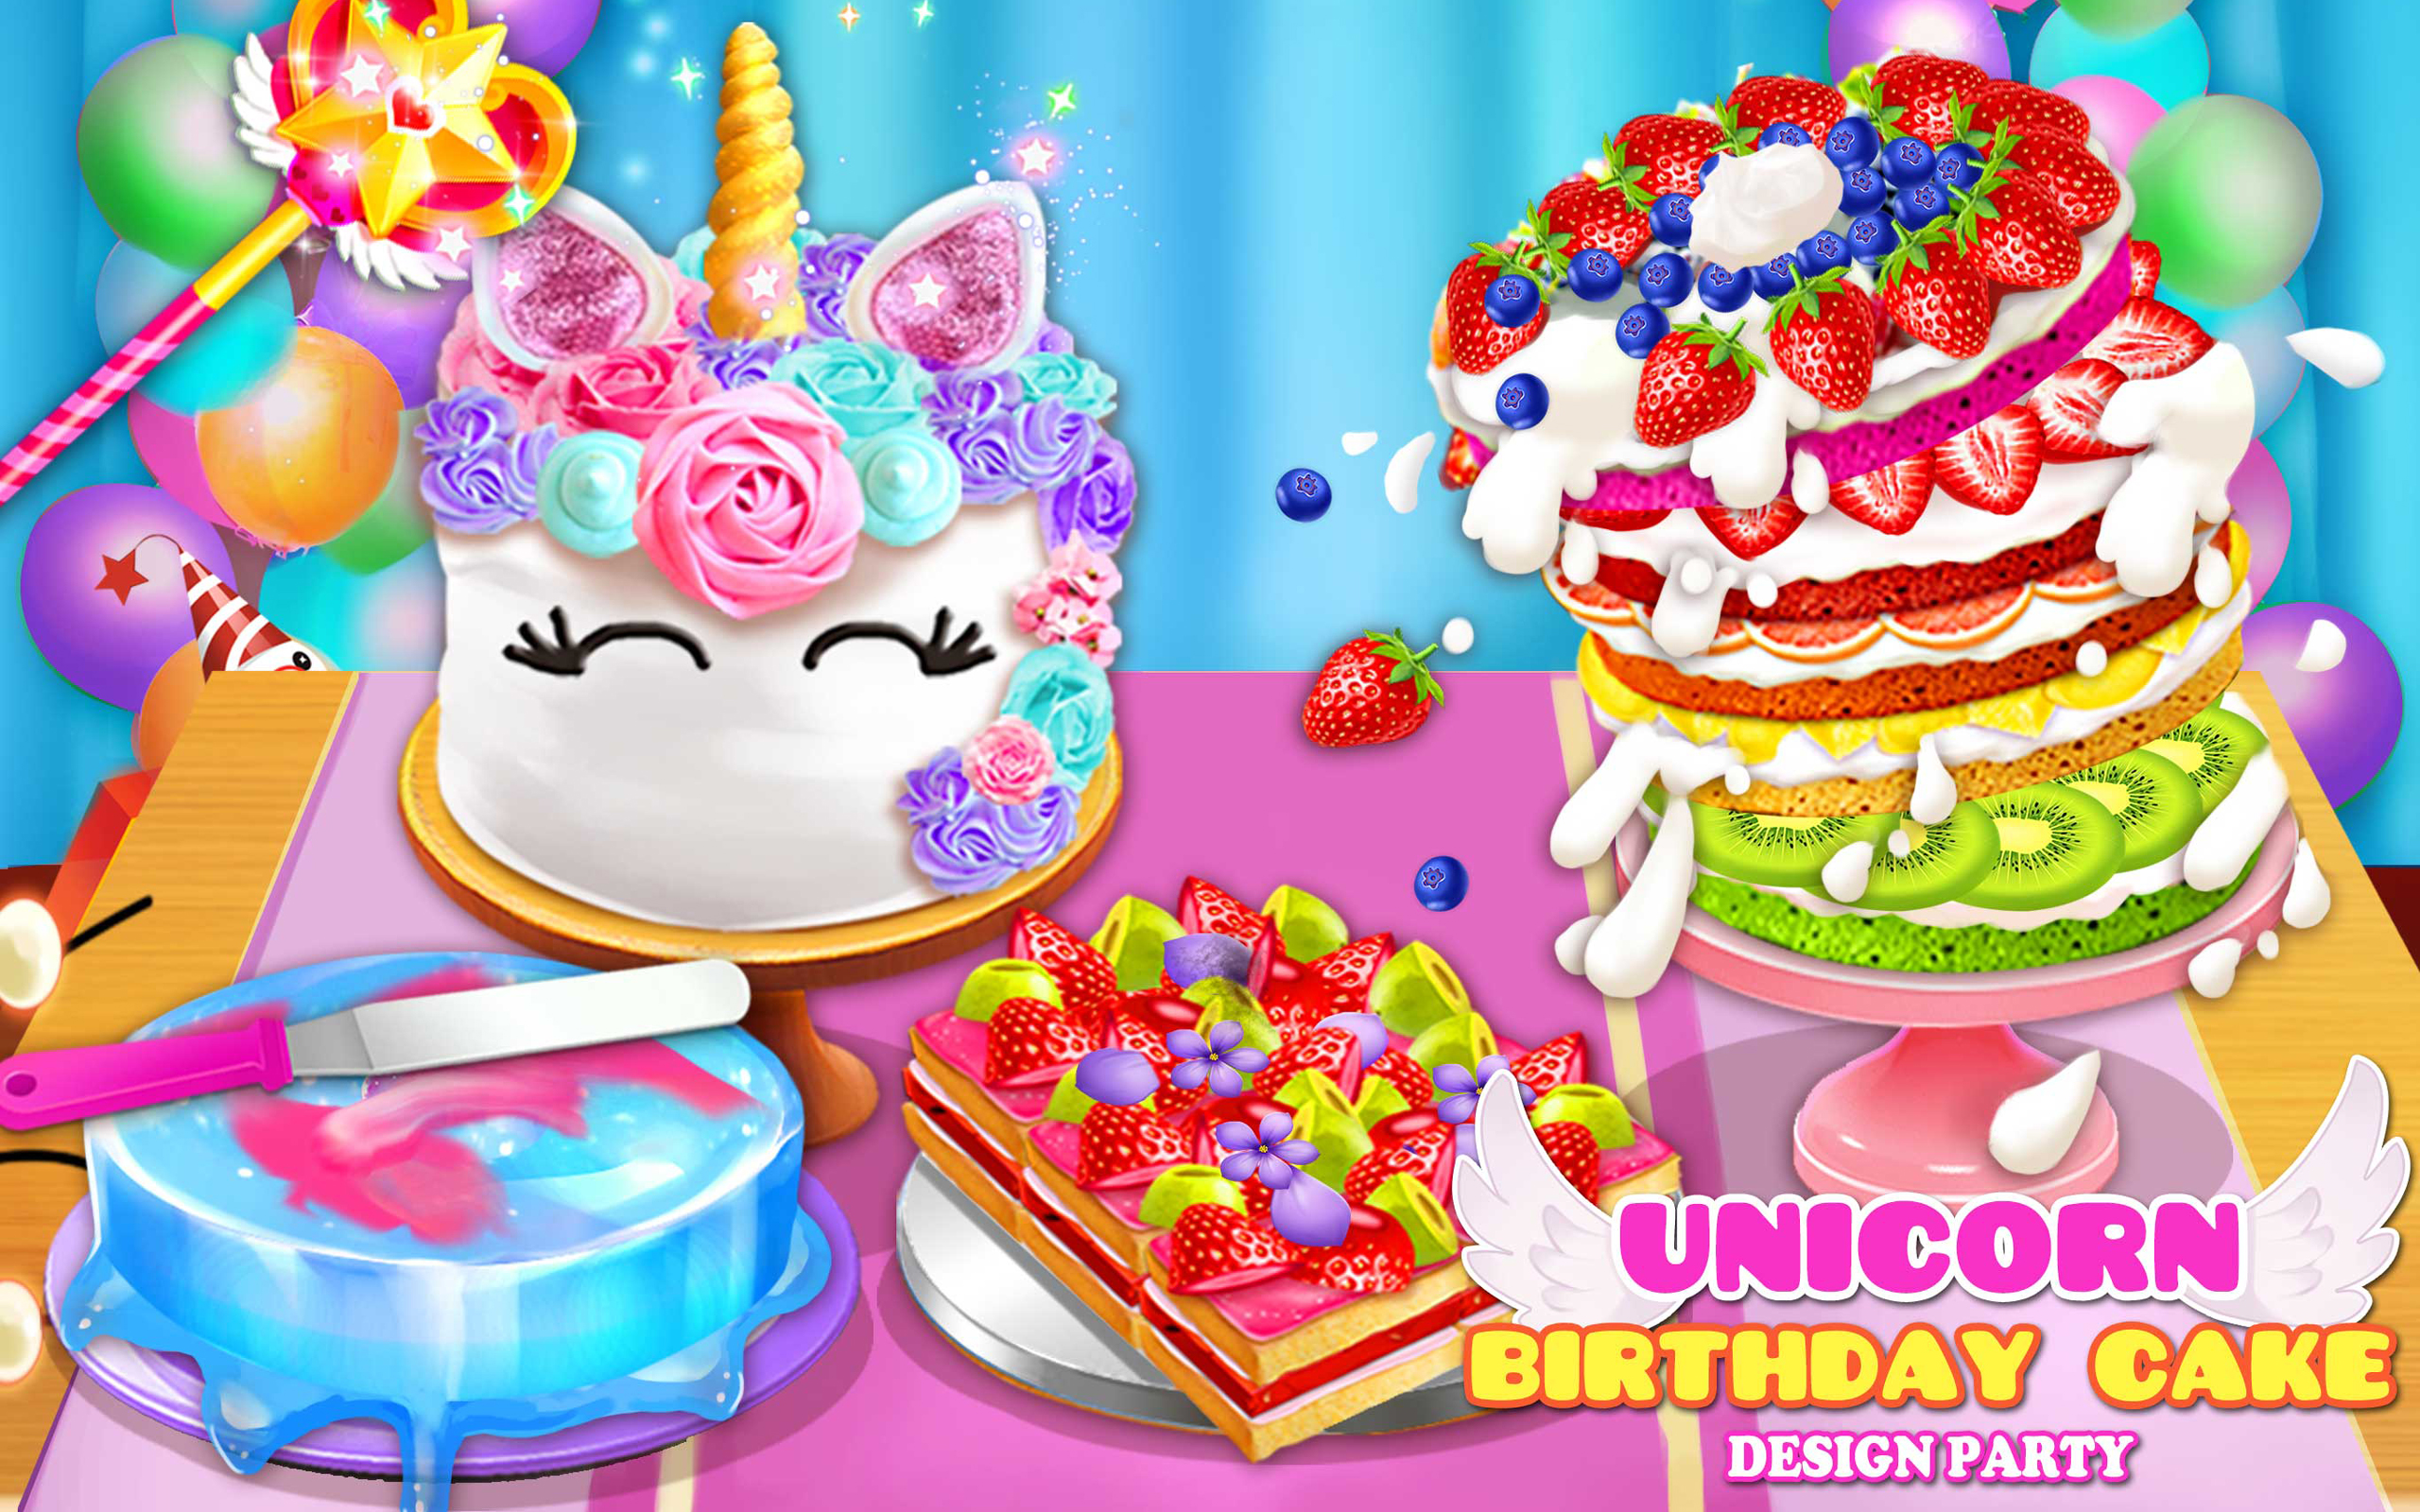 Birthday Cake Design Party Amazonde Apps Fur Android